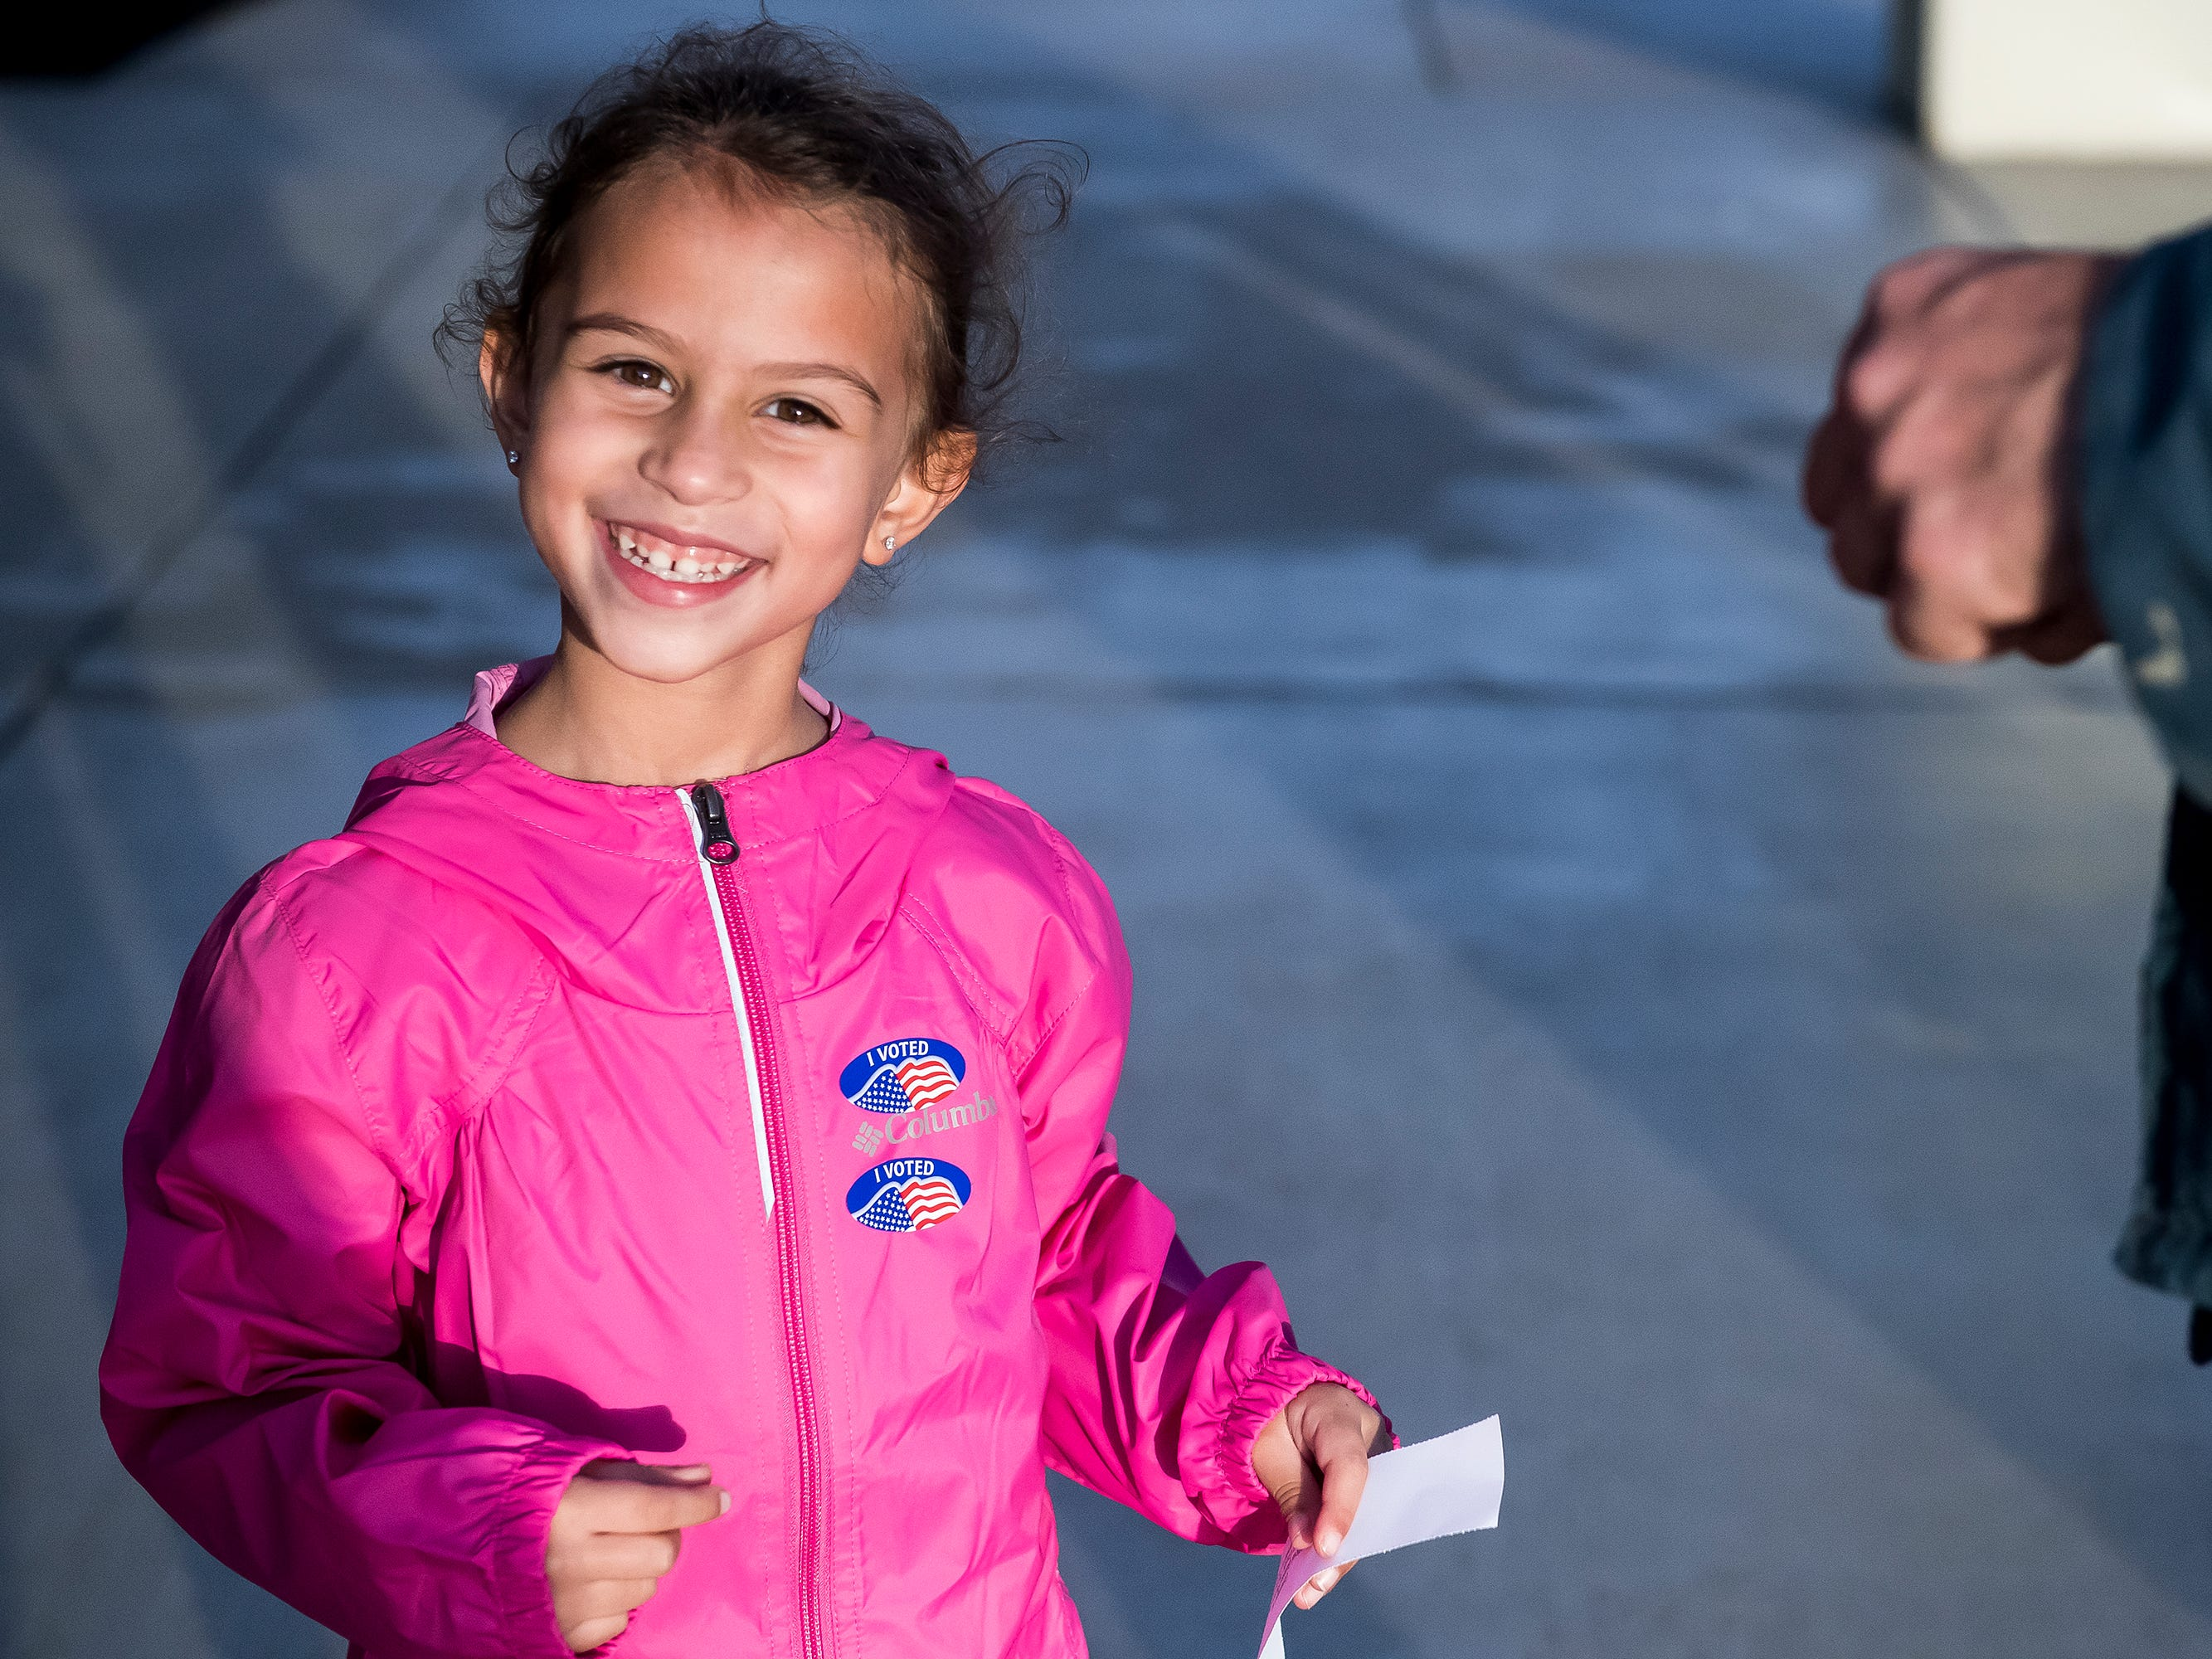 Olivia Zions, 5, smiles after going to the polls with her father, Andrew Zions, at the Southeastern Adams Volunteer Emergency Services building in Conewago Township on Tuesday, November 6, 2018.